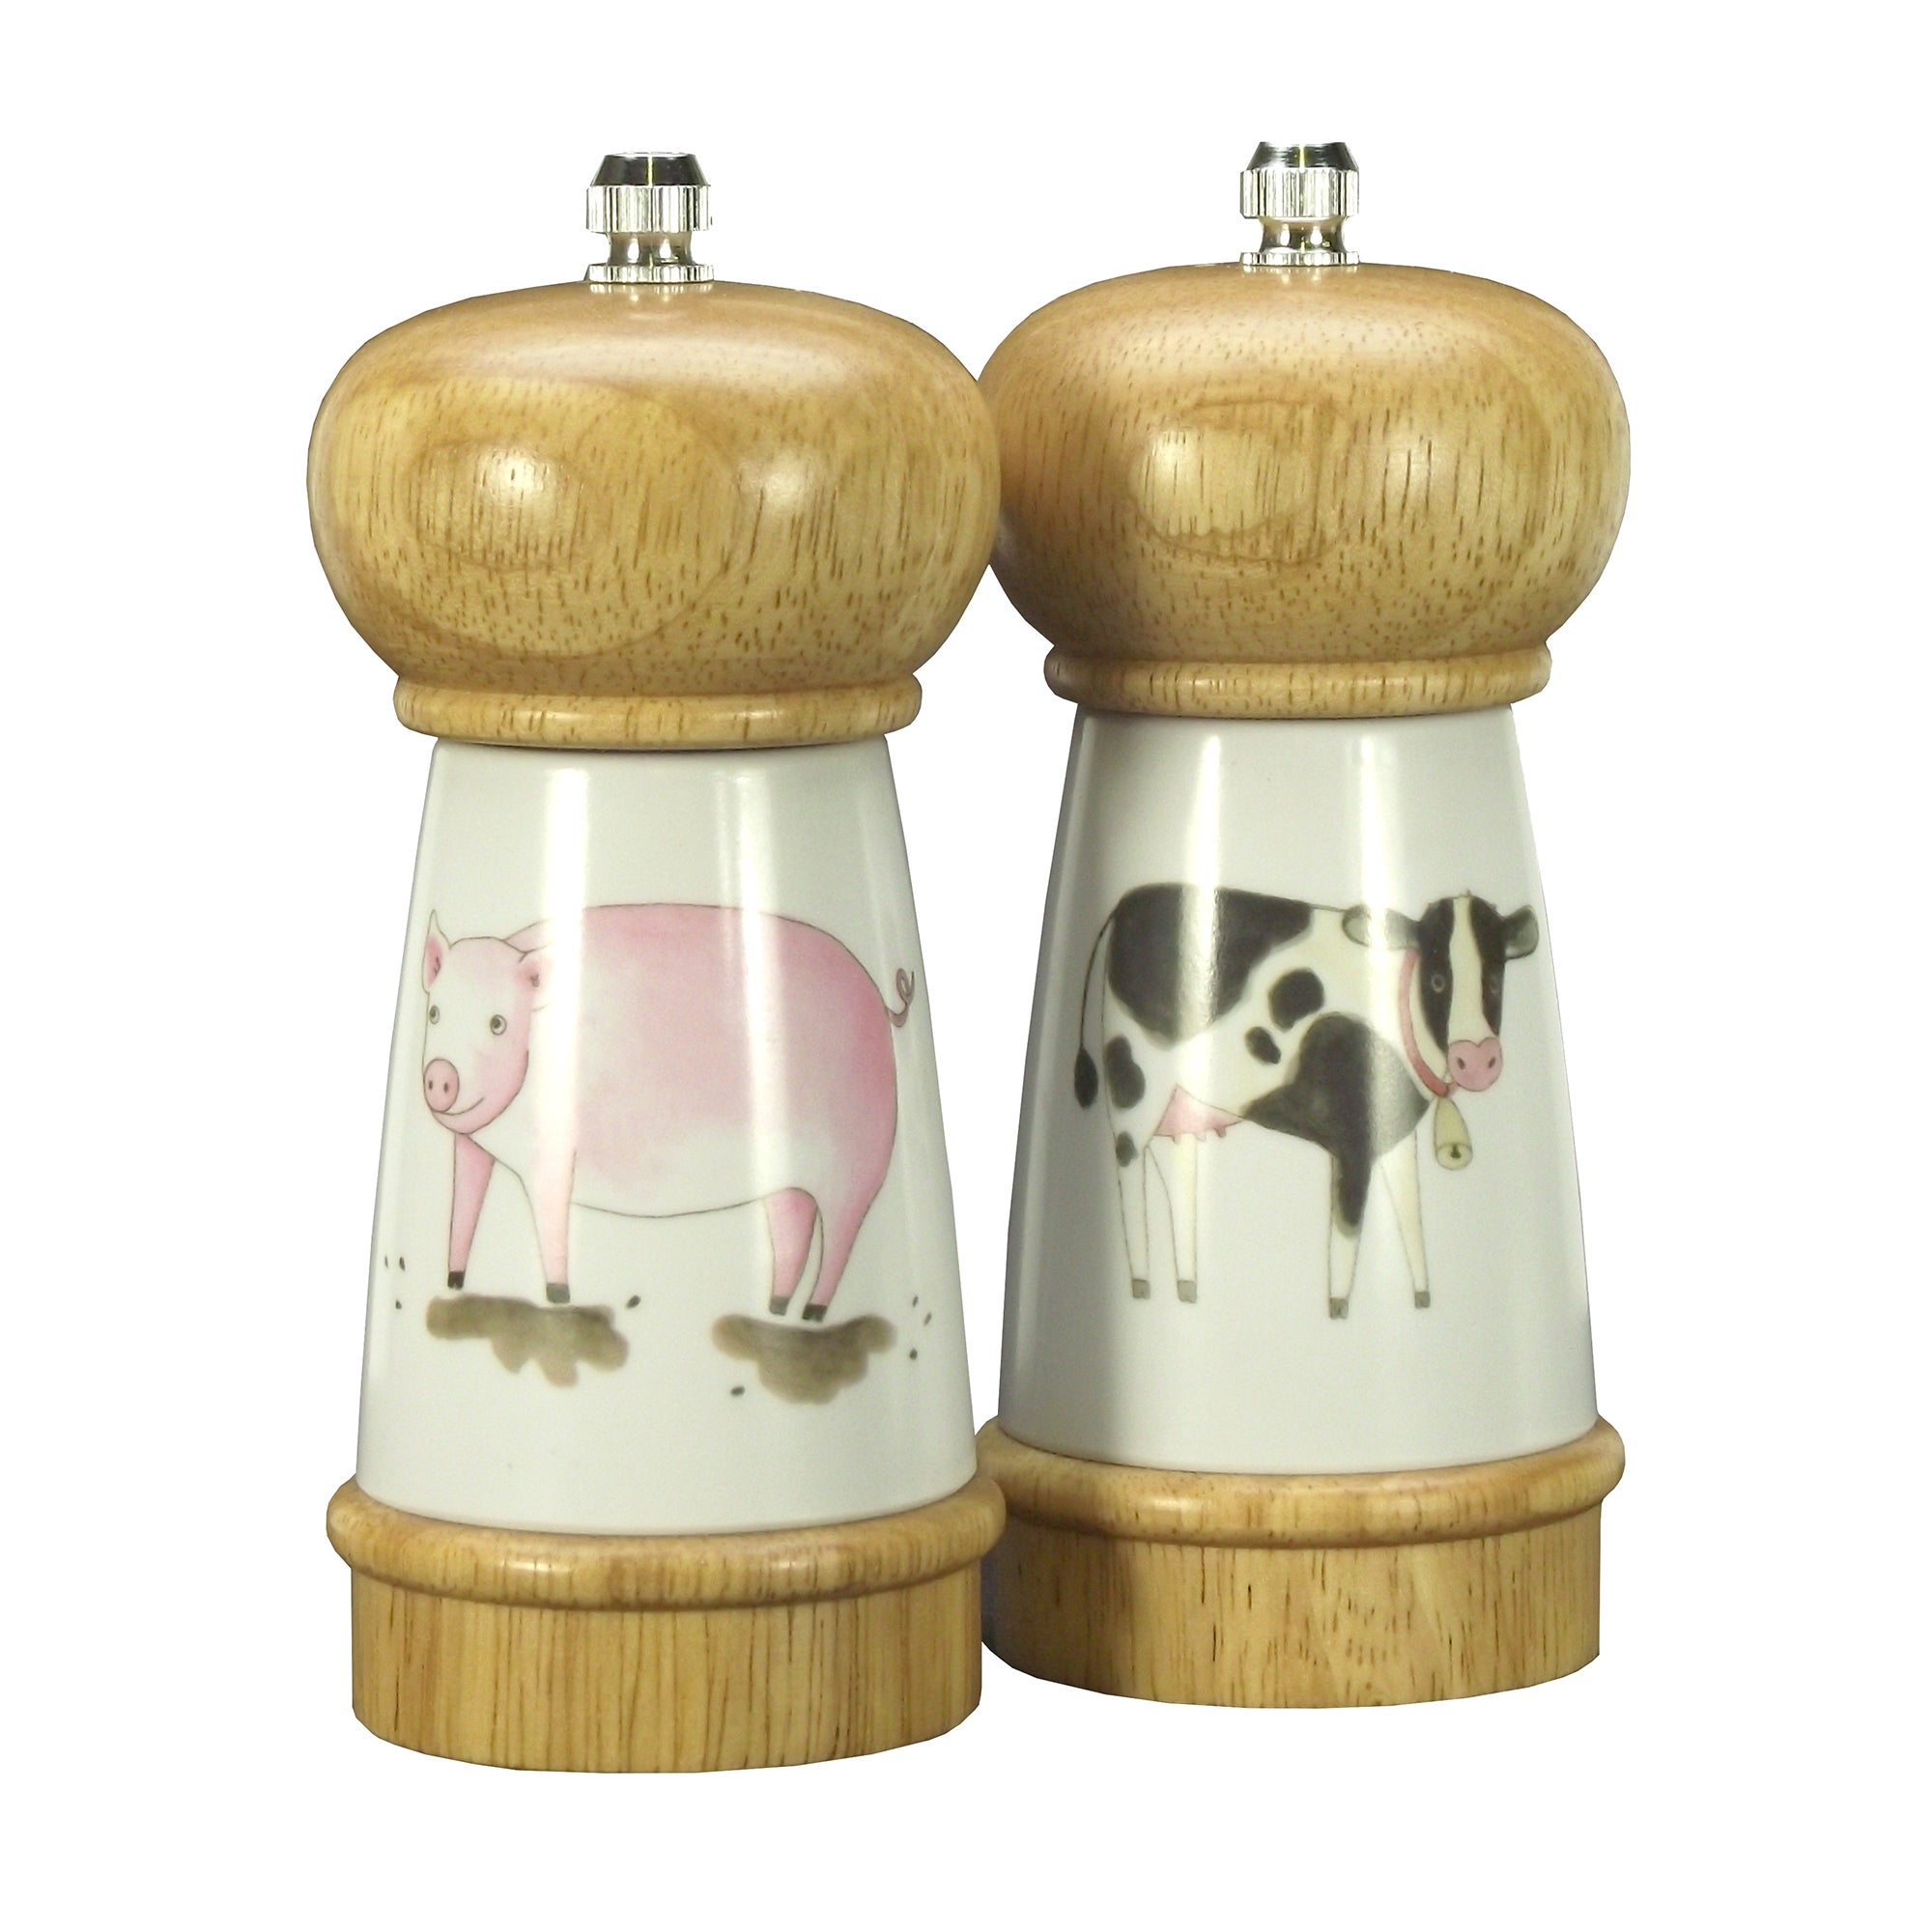 Bakewell Farm Collection Salt and Pepper Mills